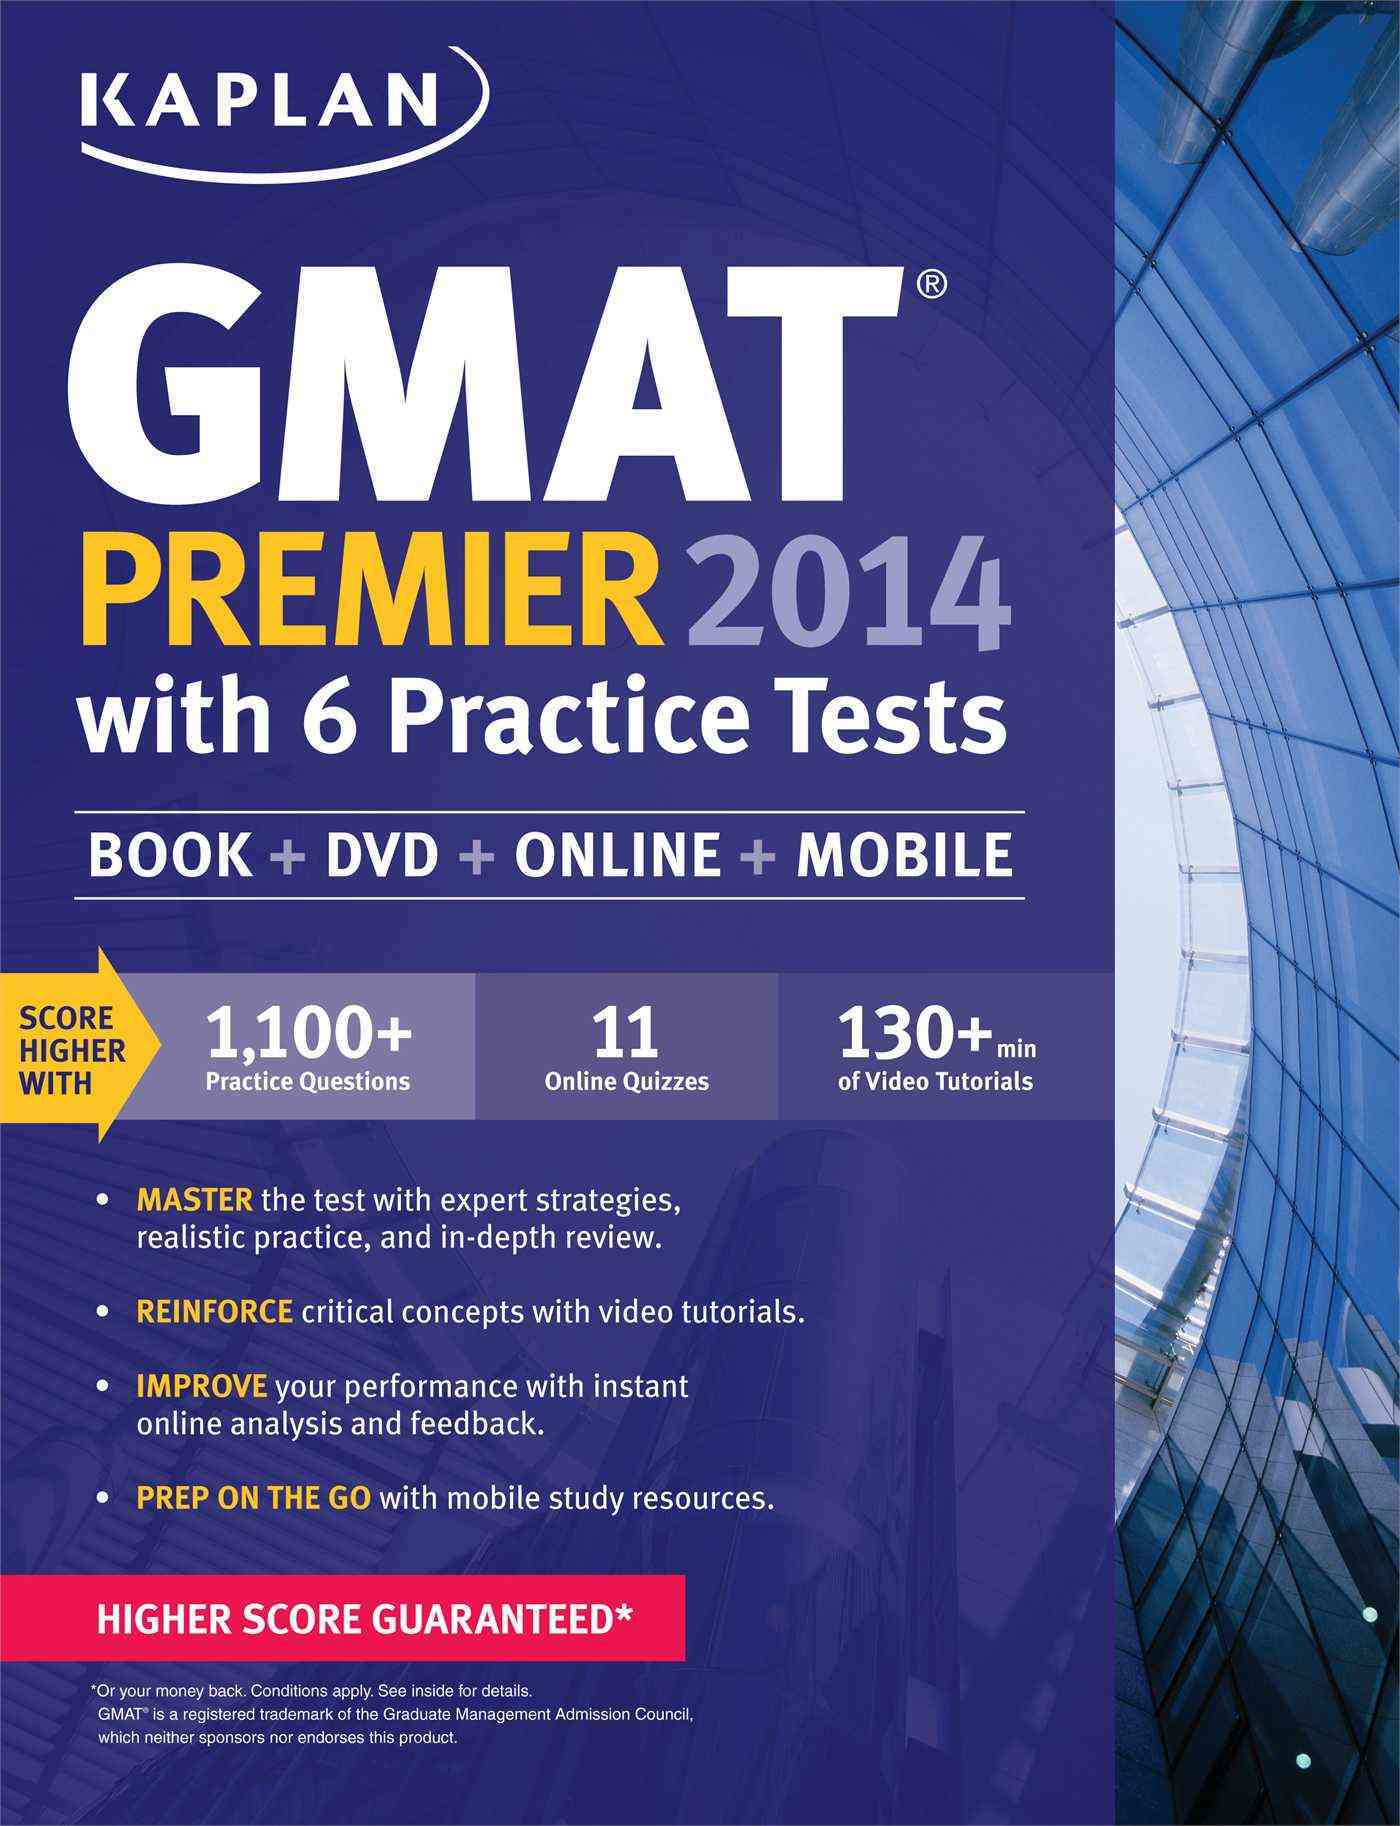 Kaplan GMAT Premier 2014: With 6 Practice Tests